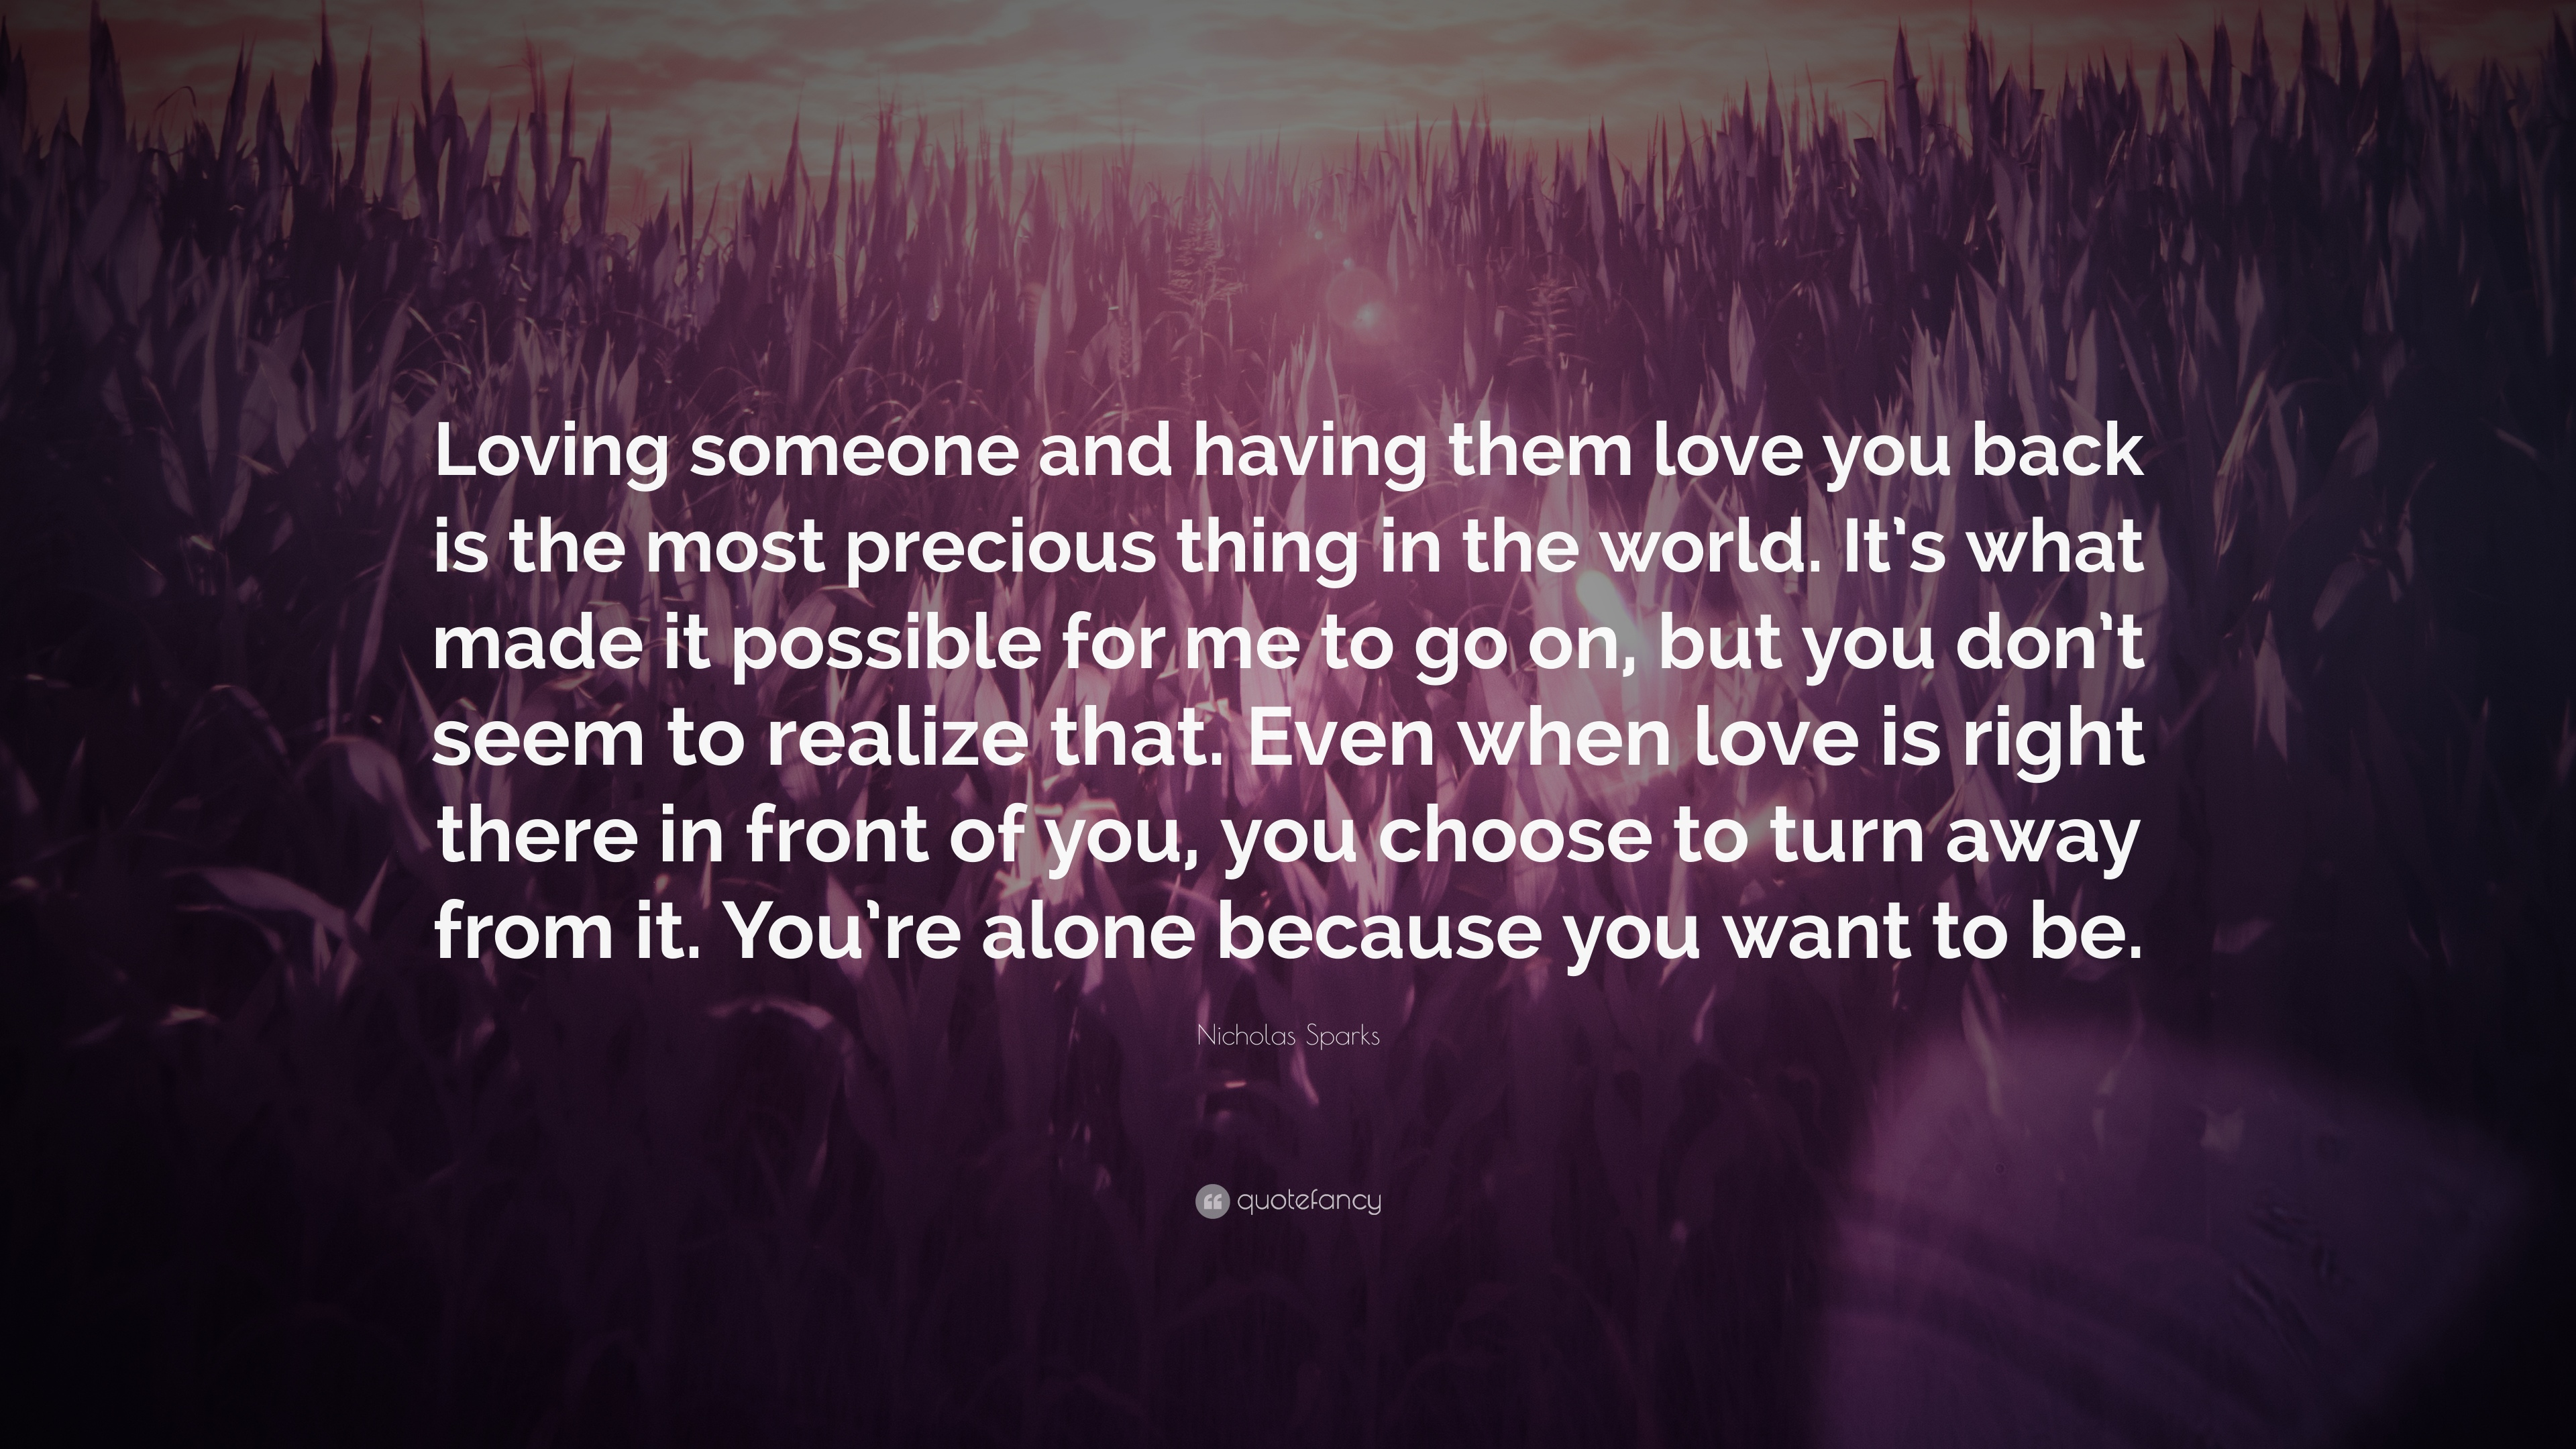 Nicholas Sparks Quote Loving Someone And Having Them Love You Back